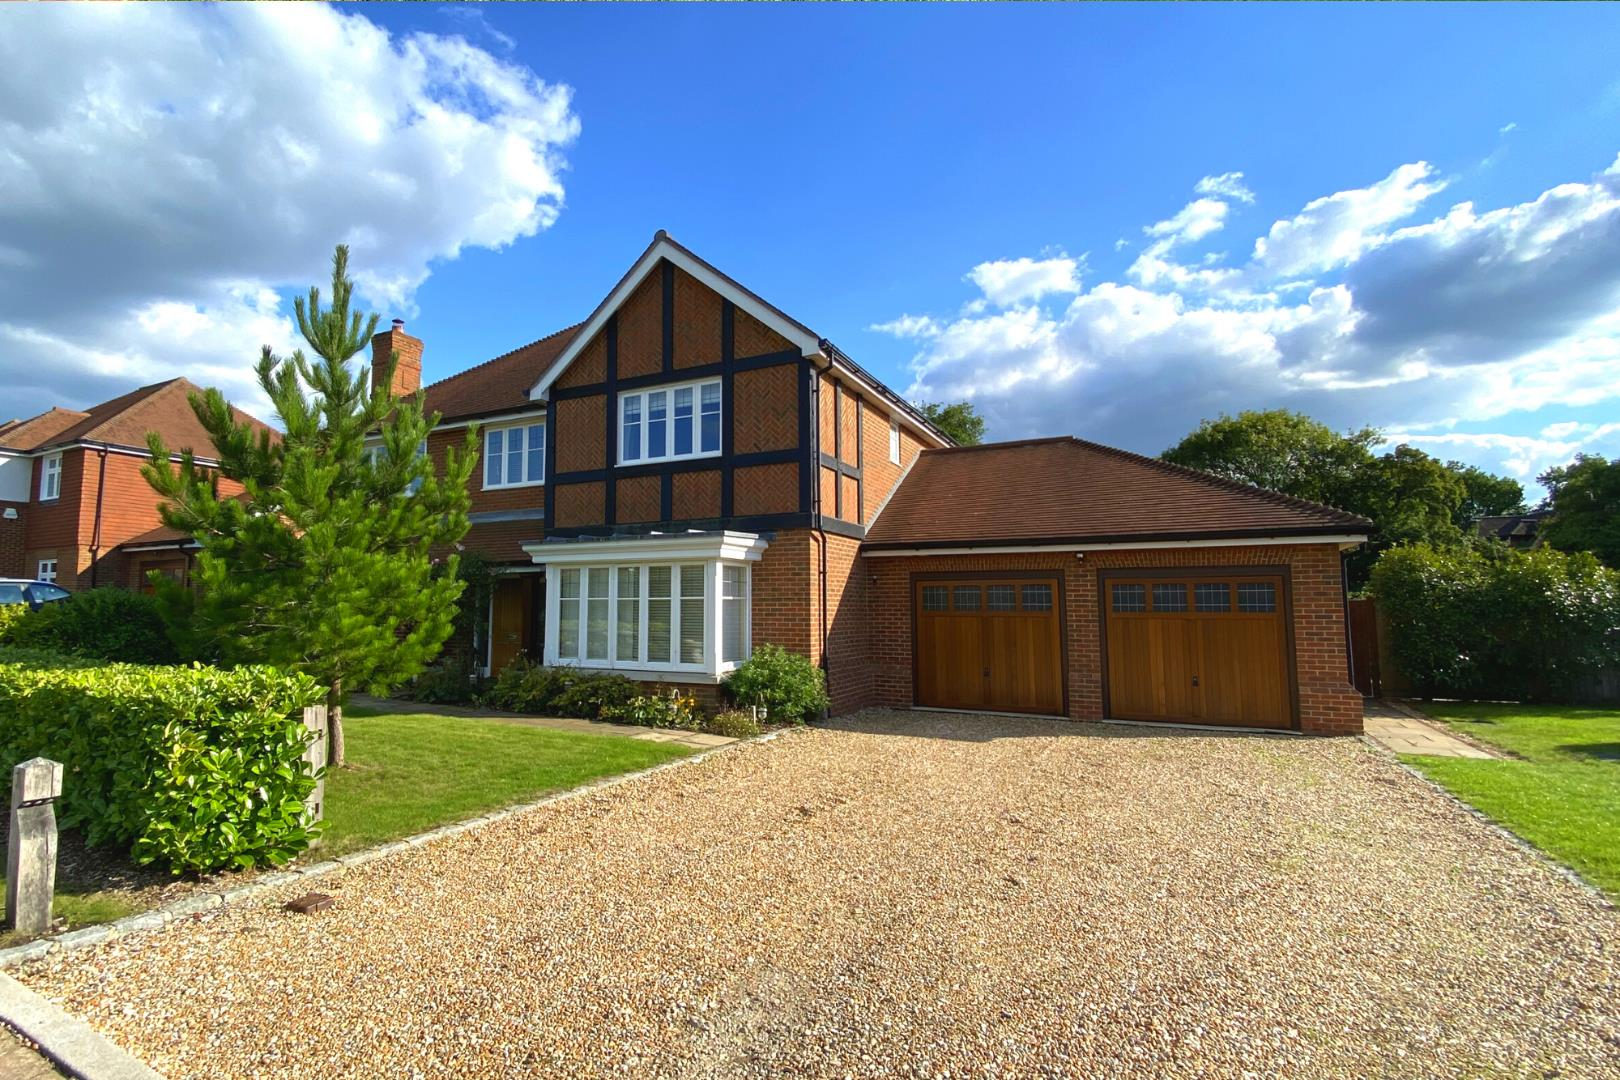 4 bed house for sale  - Property Image 29